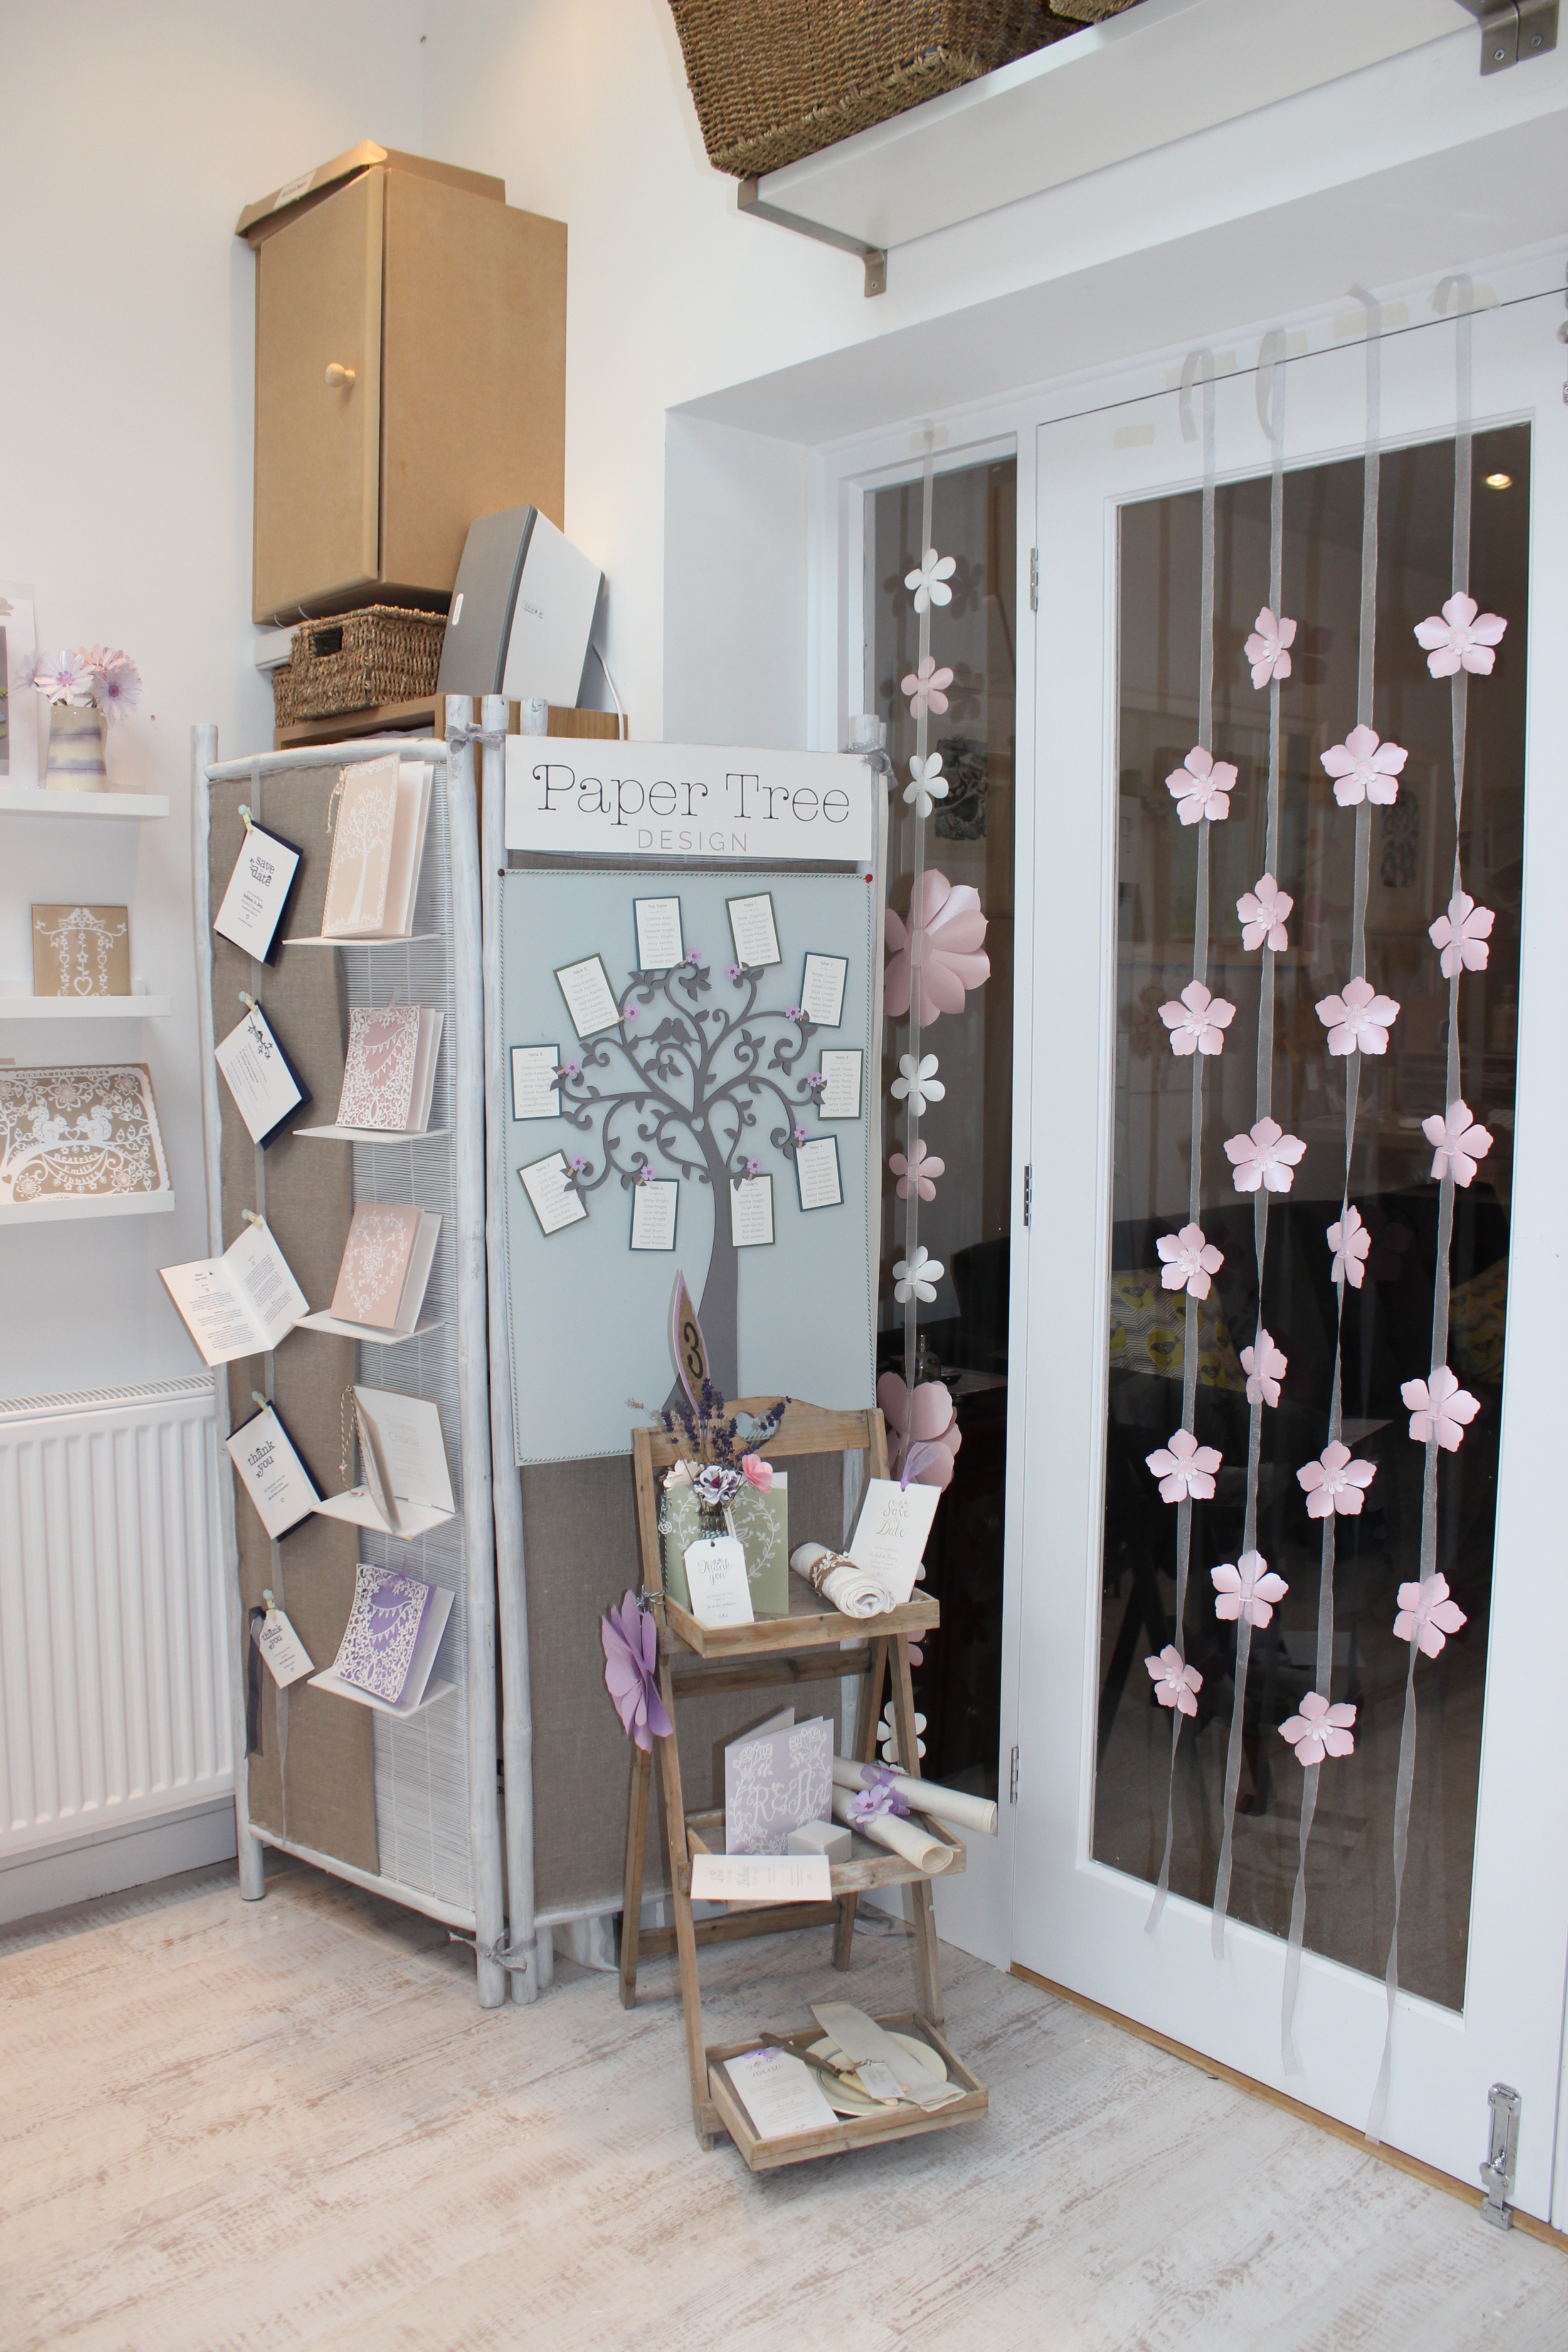 The glass doors are perfect for planning out my hanging decorations and it is so nice to have space for my wedding fair props. The floor also doubles up as one of my photographic backgrounds.